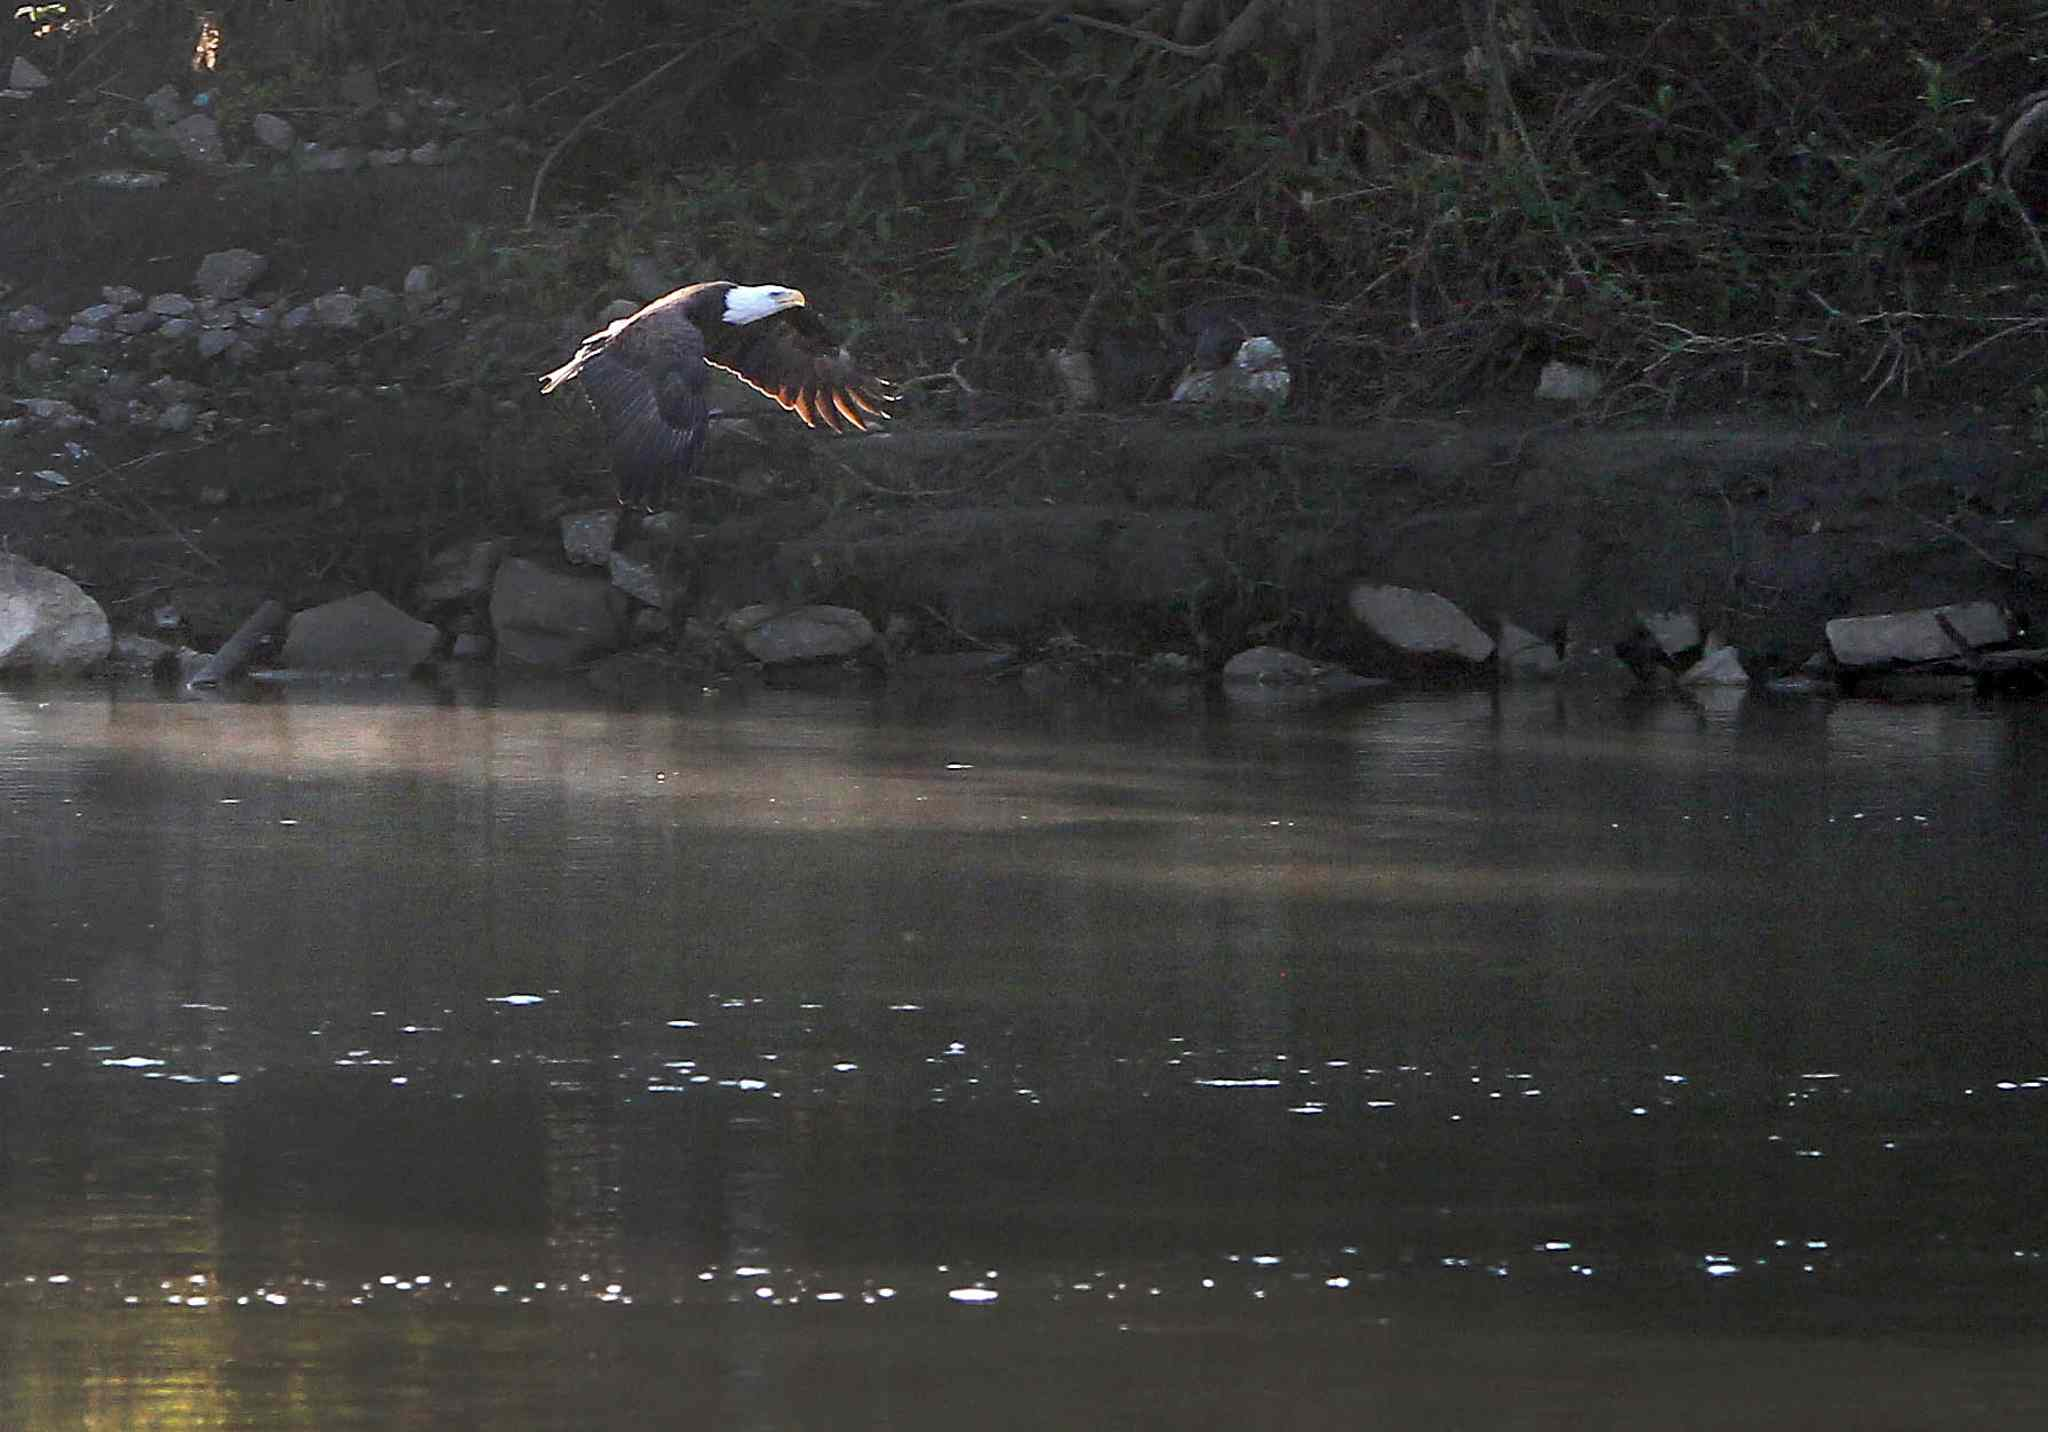 A bald eagle flies over the Red River at the Alexander Docks in Winnipeg Tuesday morning, near the location where police found the body of 15-year-old Tina Fontaine.